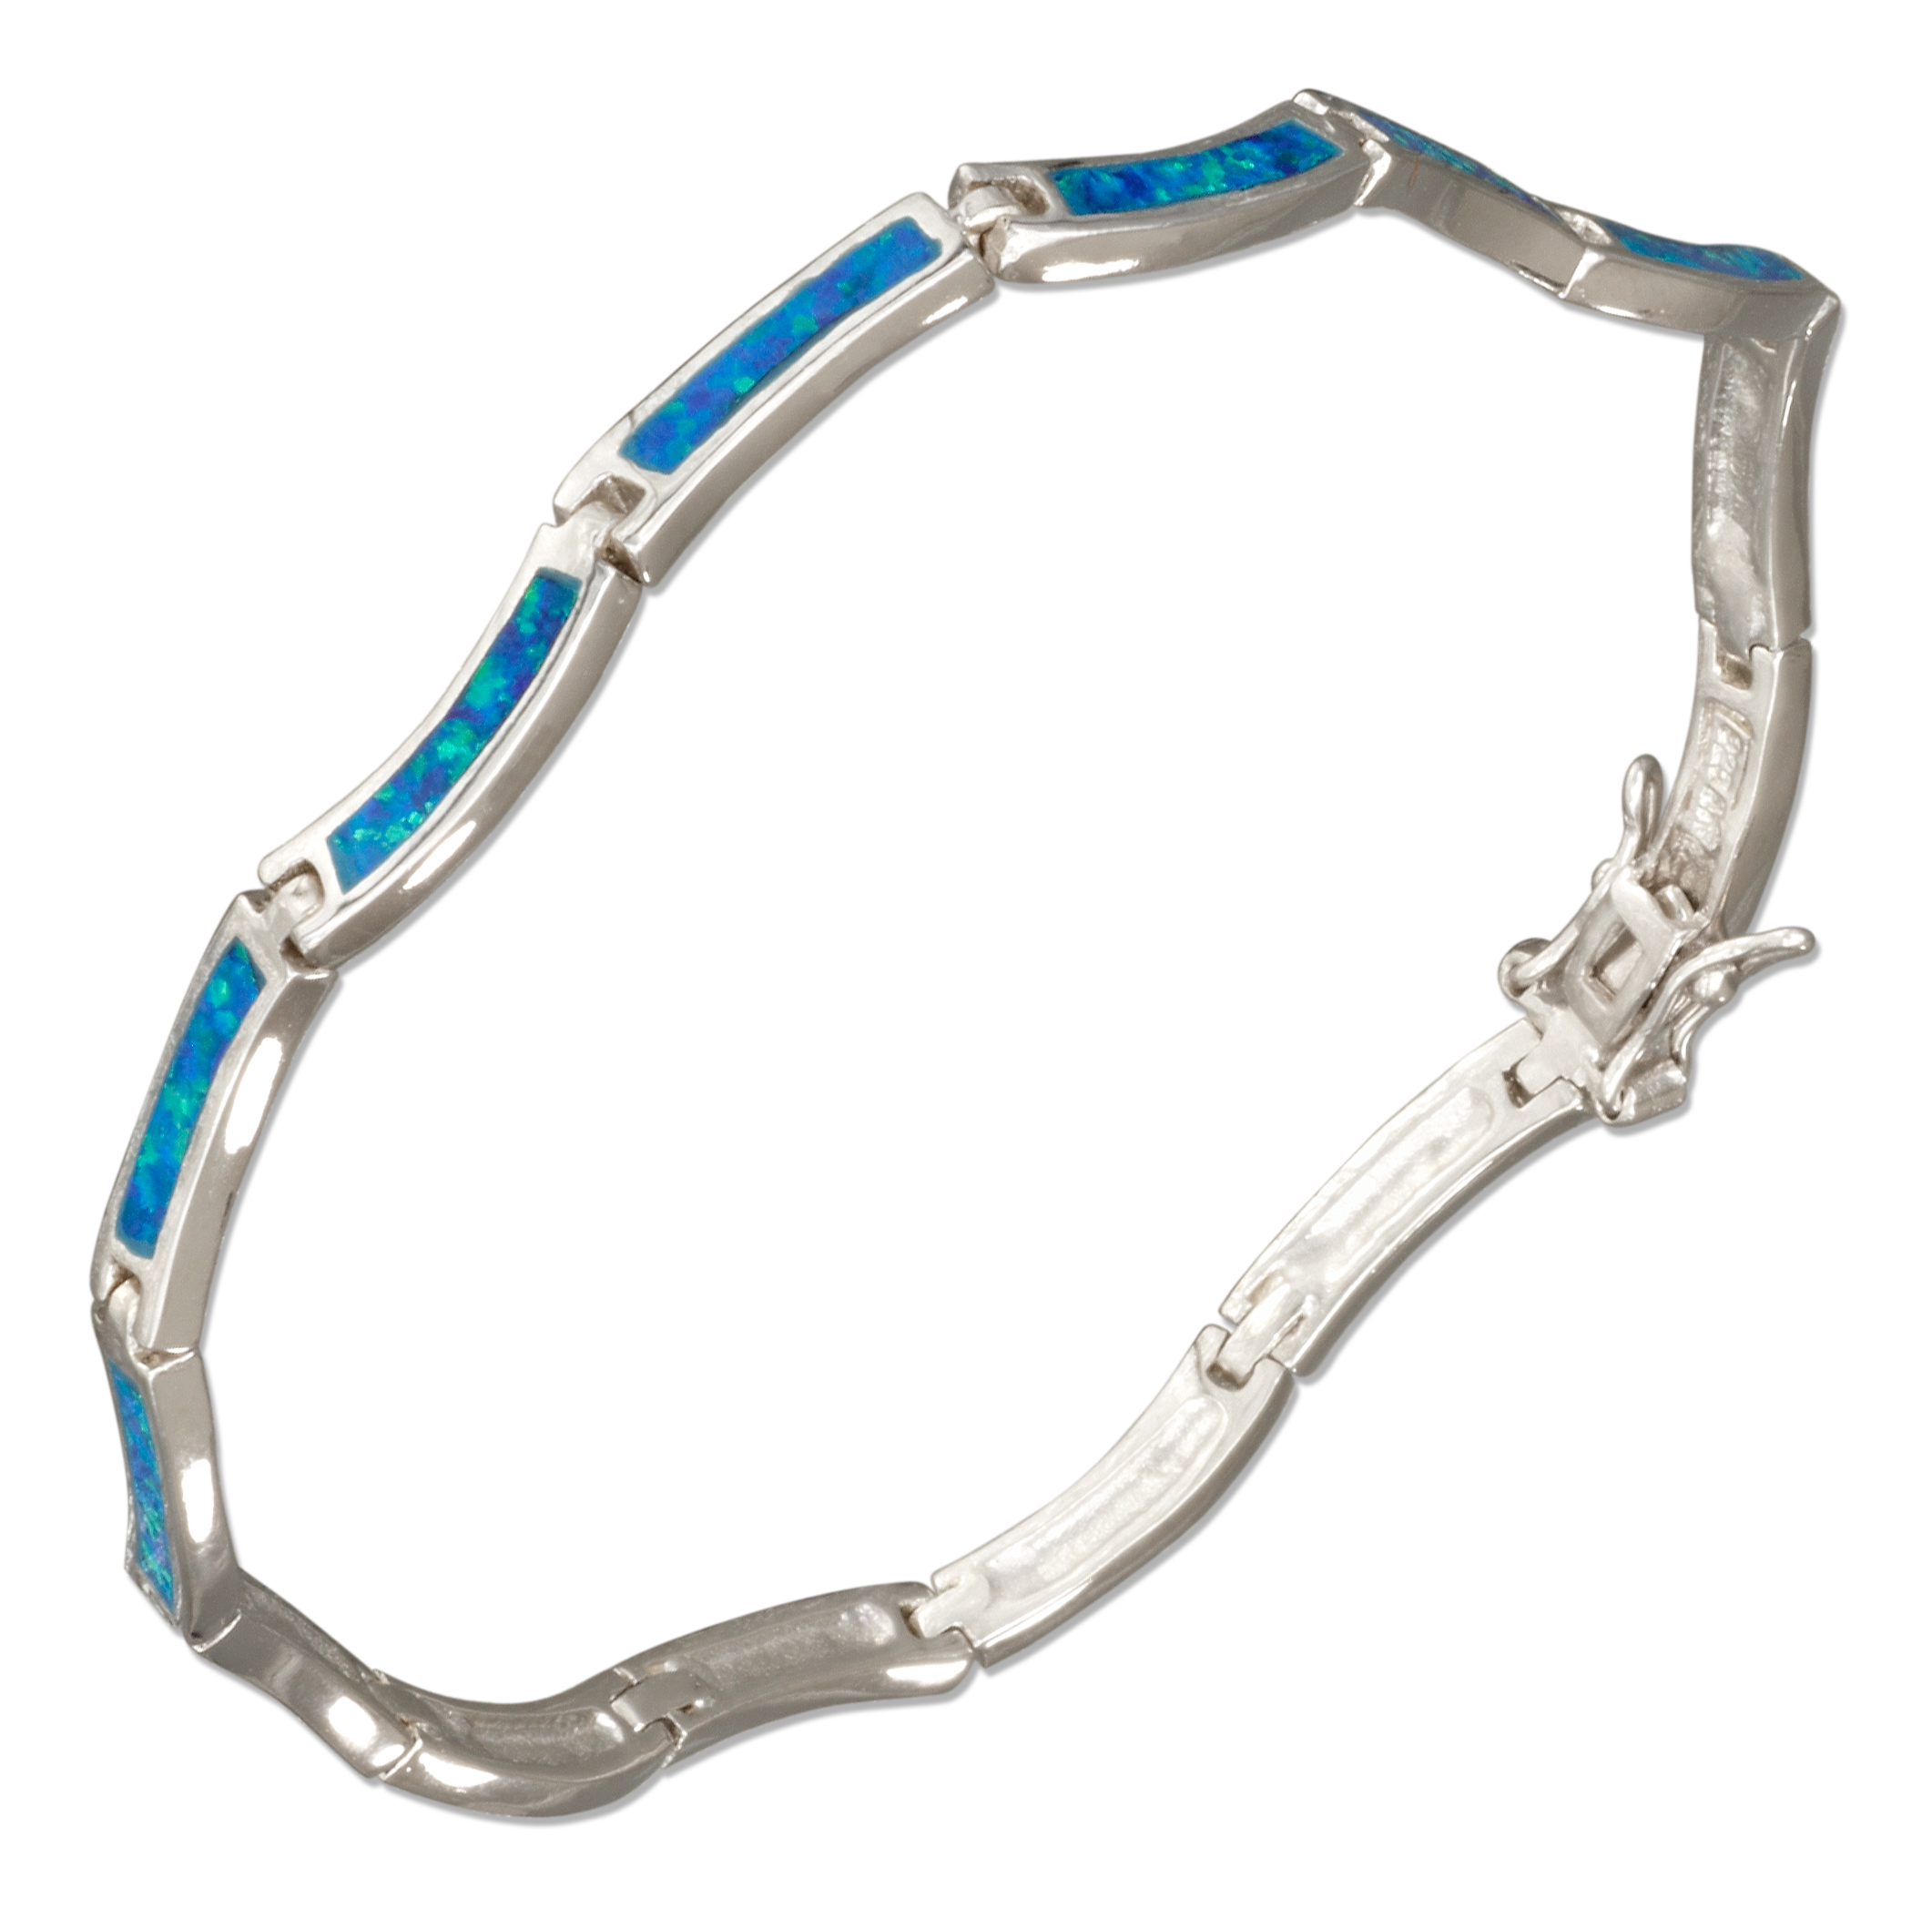 "STERLING SILVER 7.5"" WAVY LINK SYNTHETIC BLUE OPAL BRACELET by"